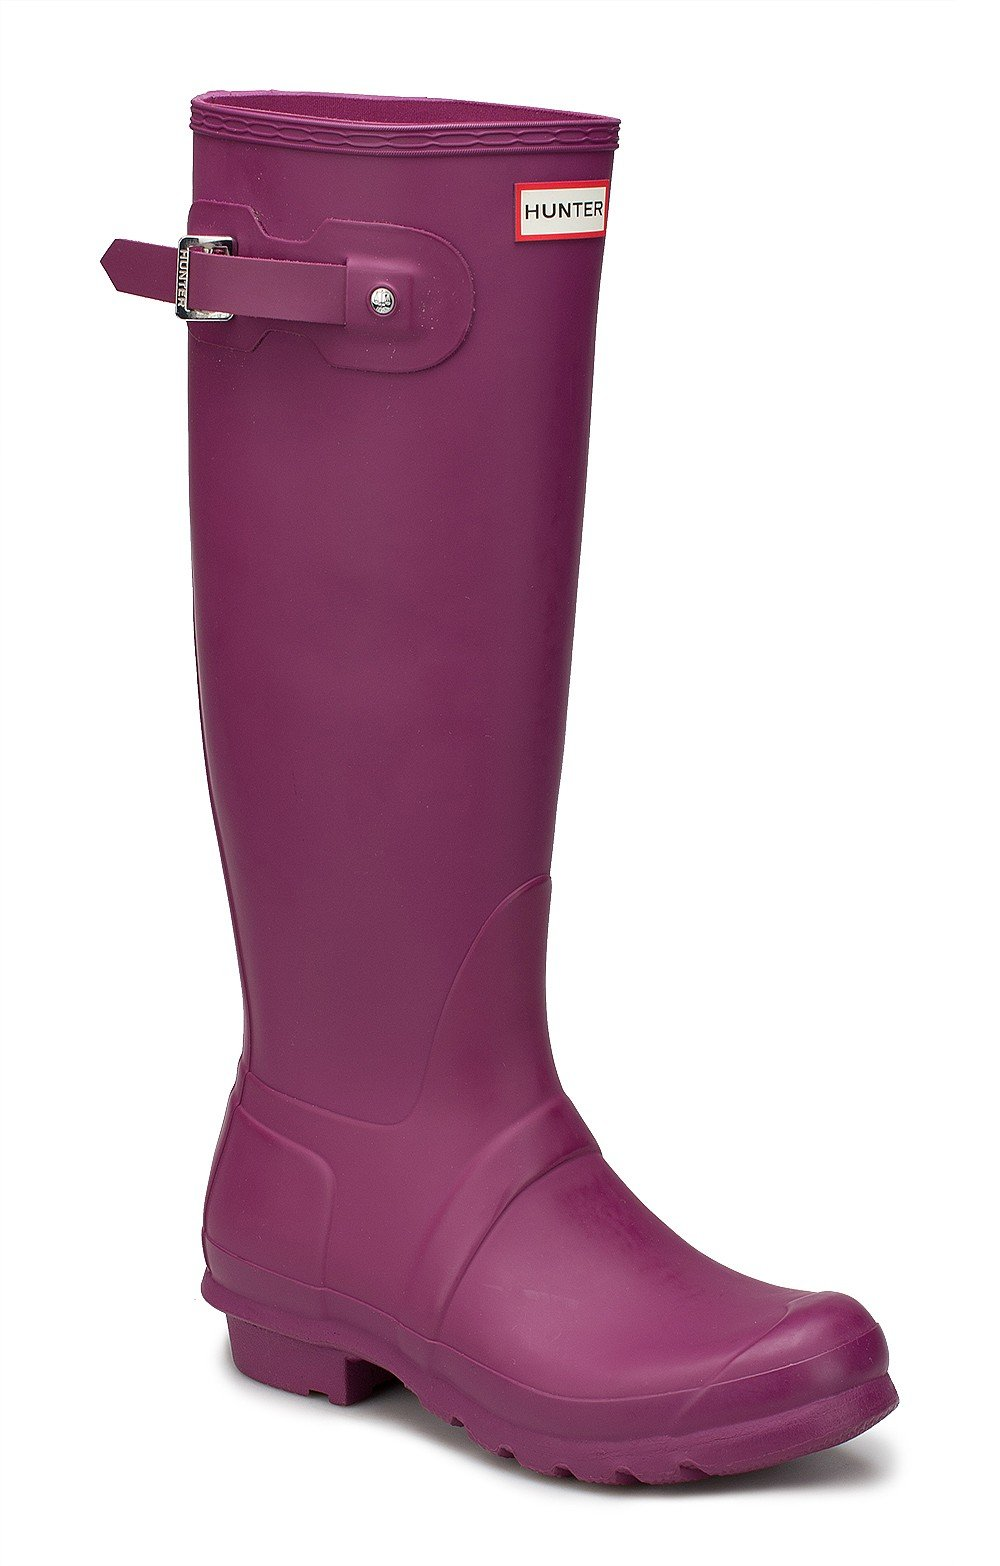 Original Hunter Matt Wellies violet